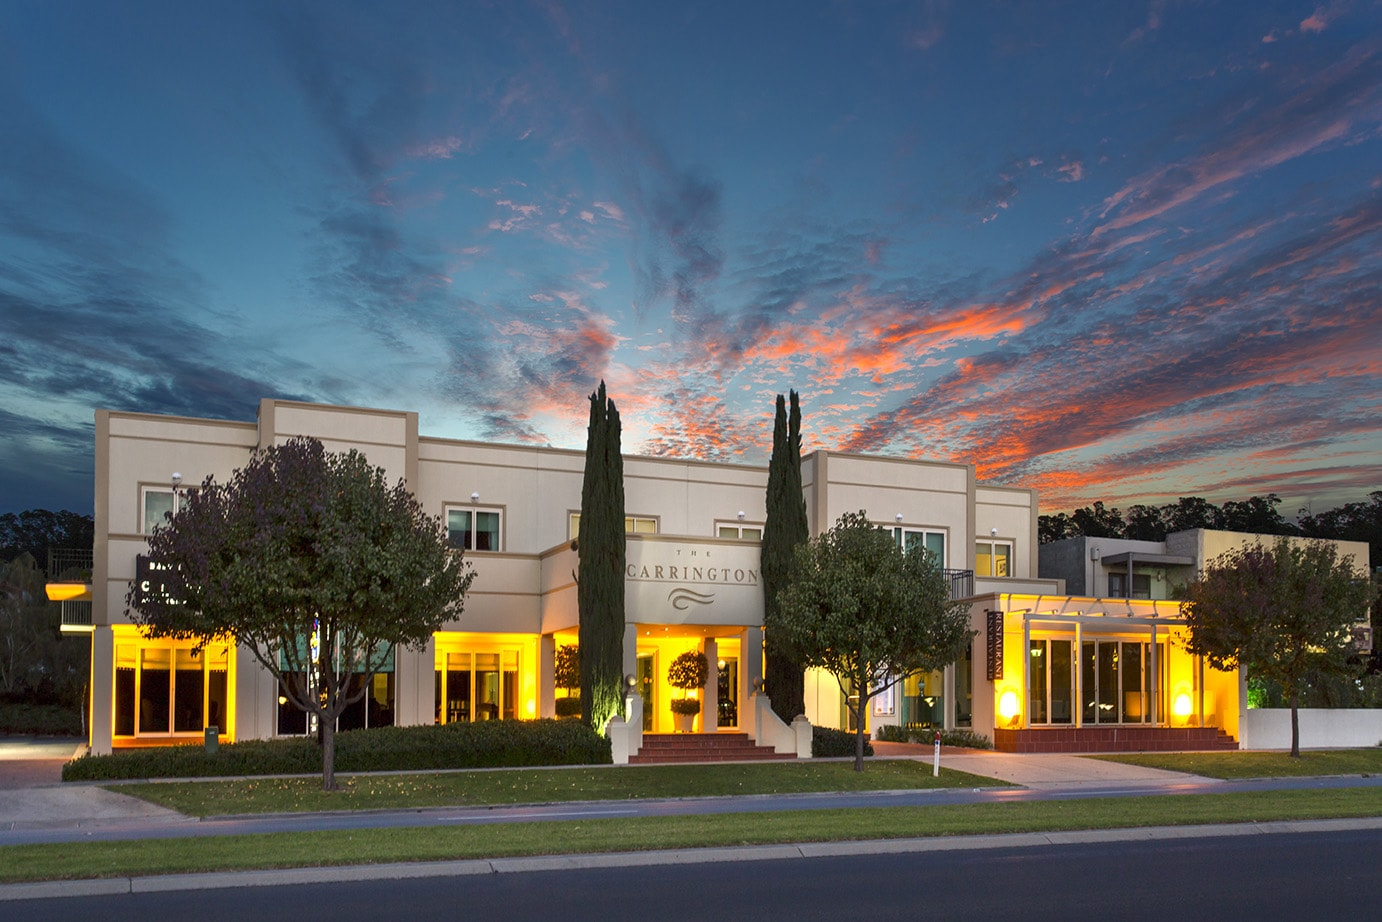 best-western-plus-the-carrington-shepparton-hotel-accommodation-exterior-6.jpg